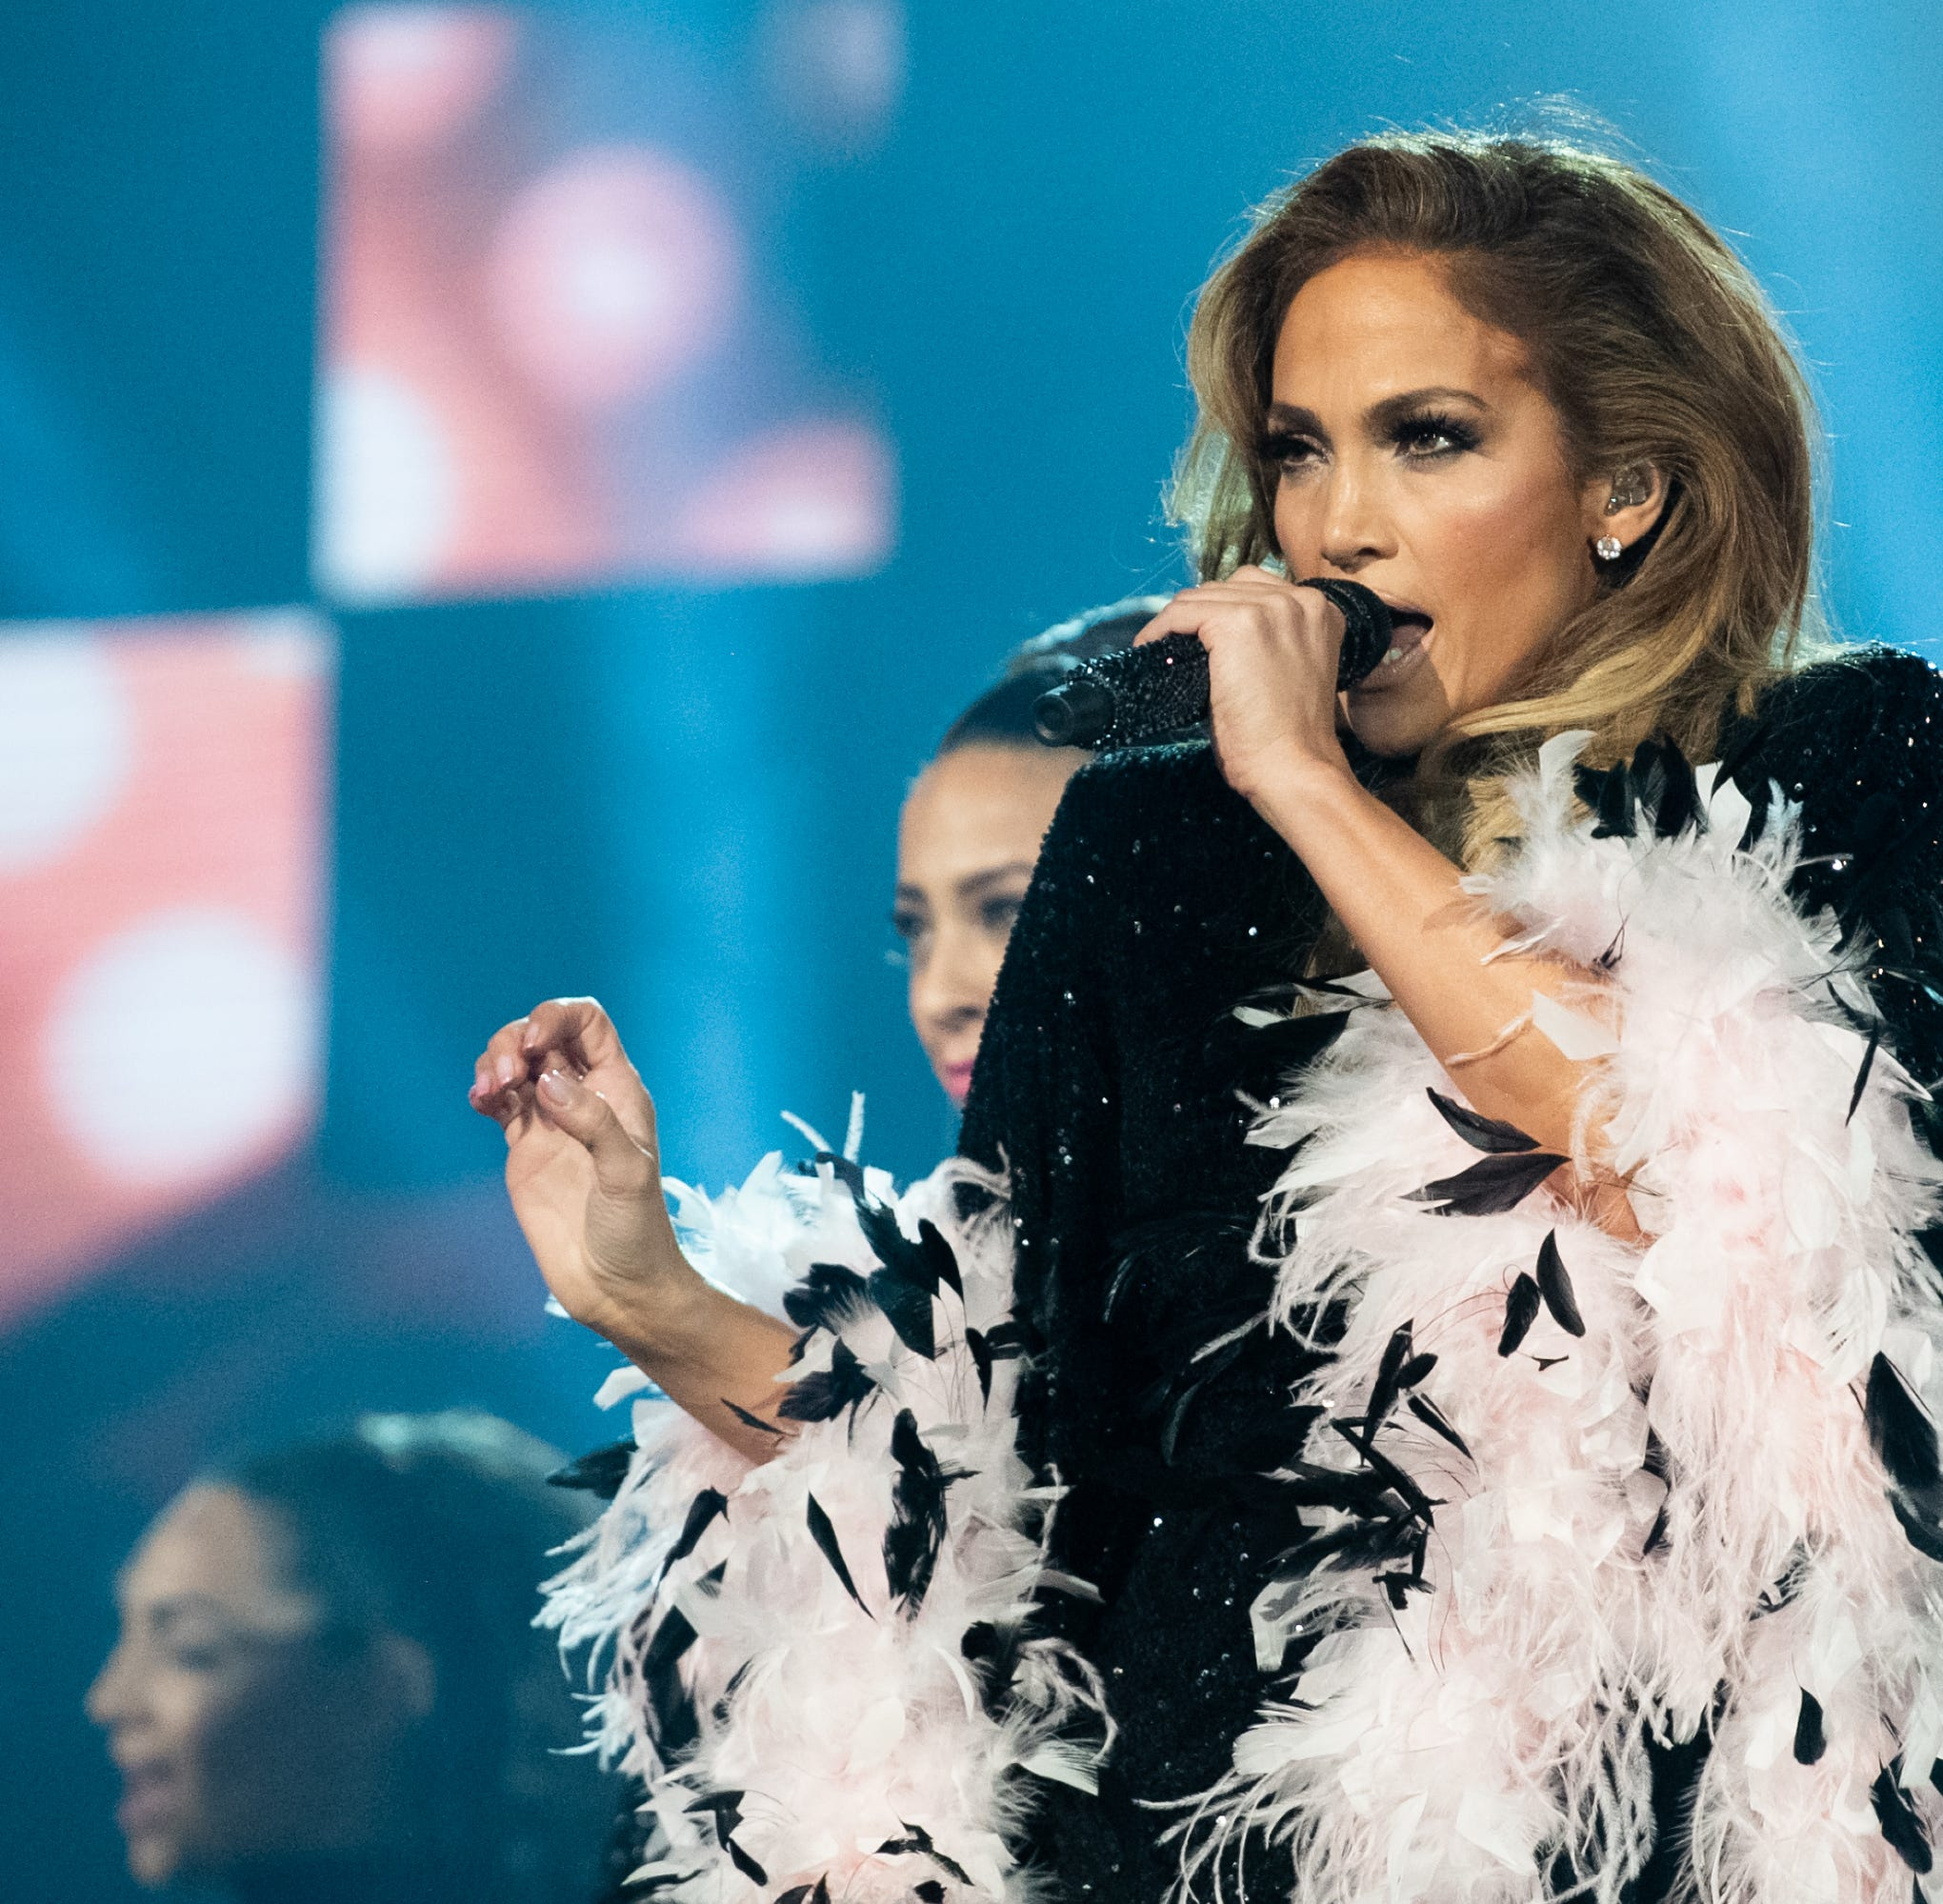 Report: Jennifer Lopez will headline this year's Summerfest